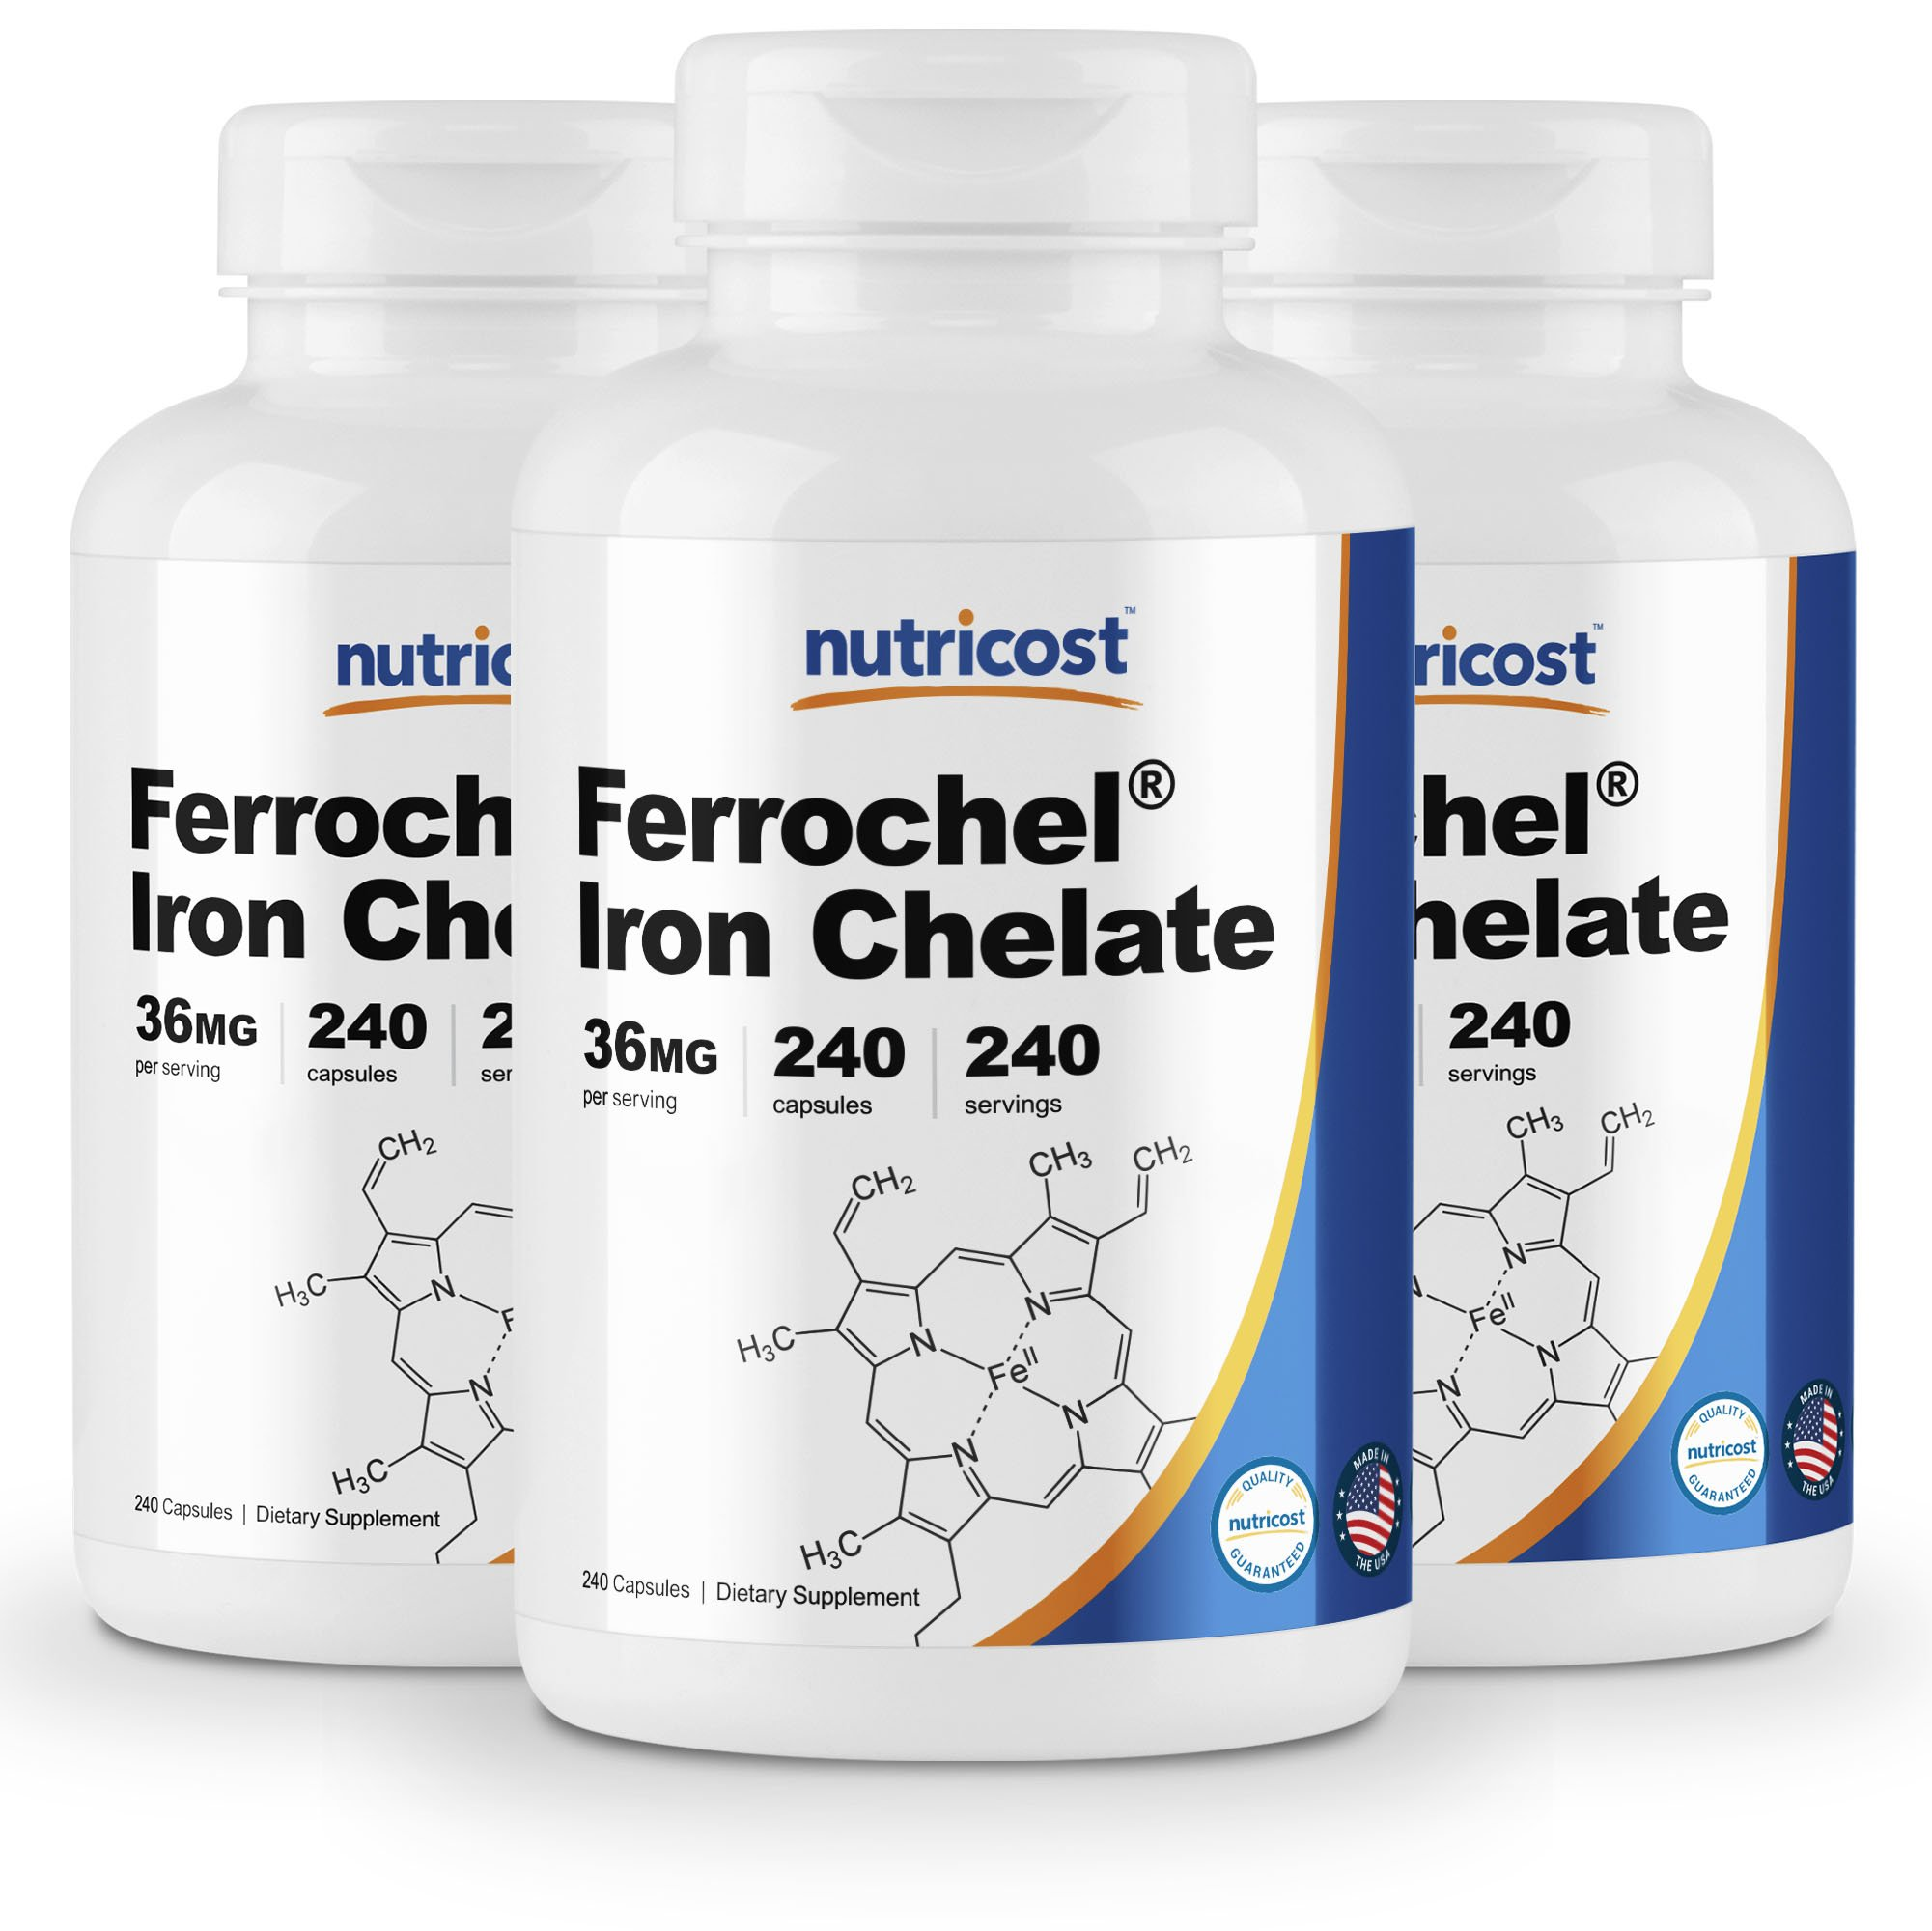 Nutricost Chelated Iron, As Ferrochel, 36mg, 240 Capsules (3 Bottles)